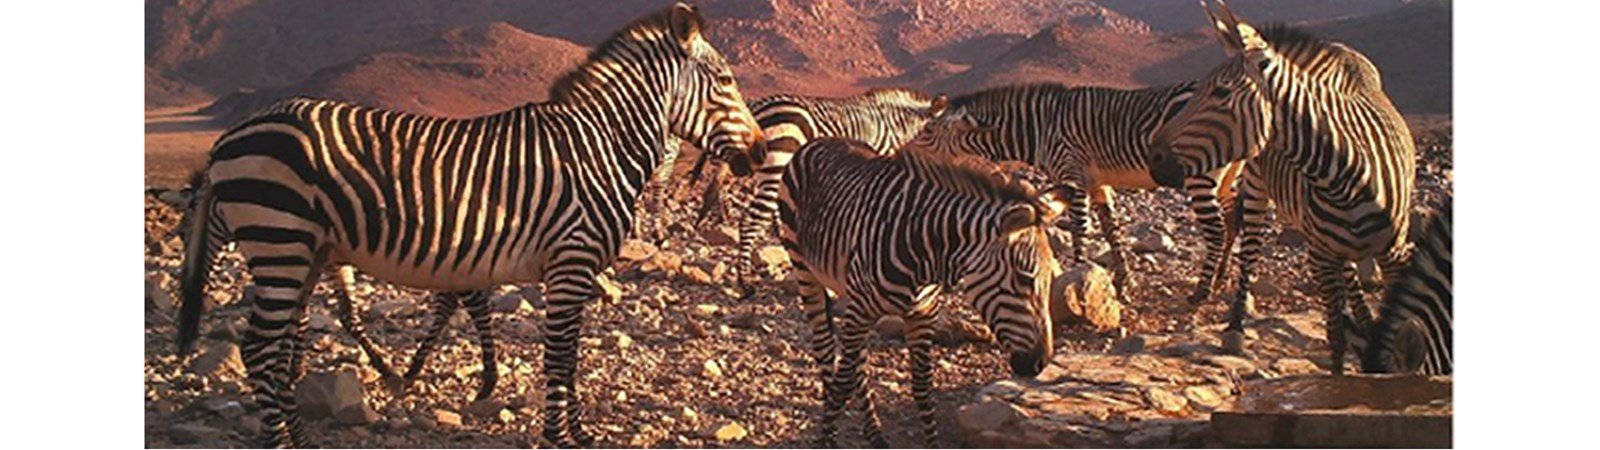 Mountain Zebra Project